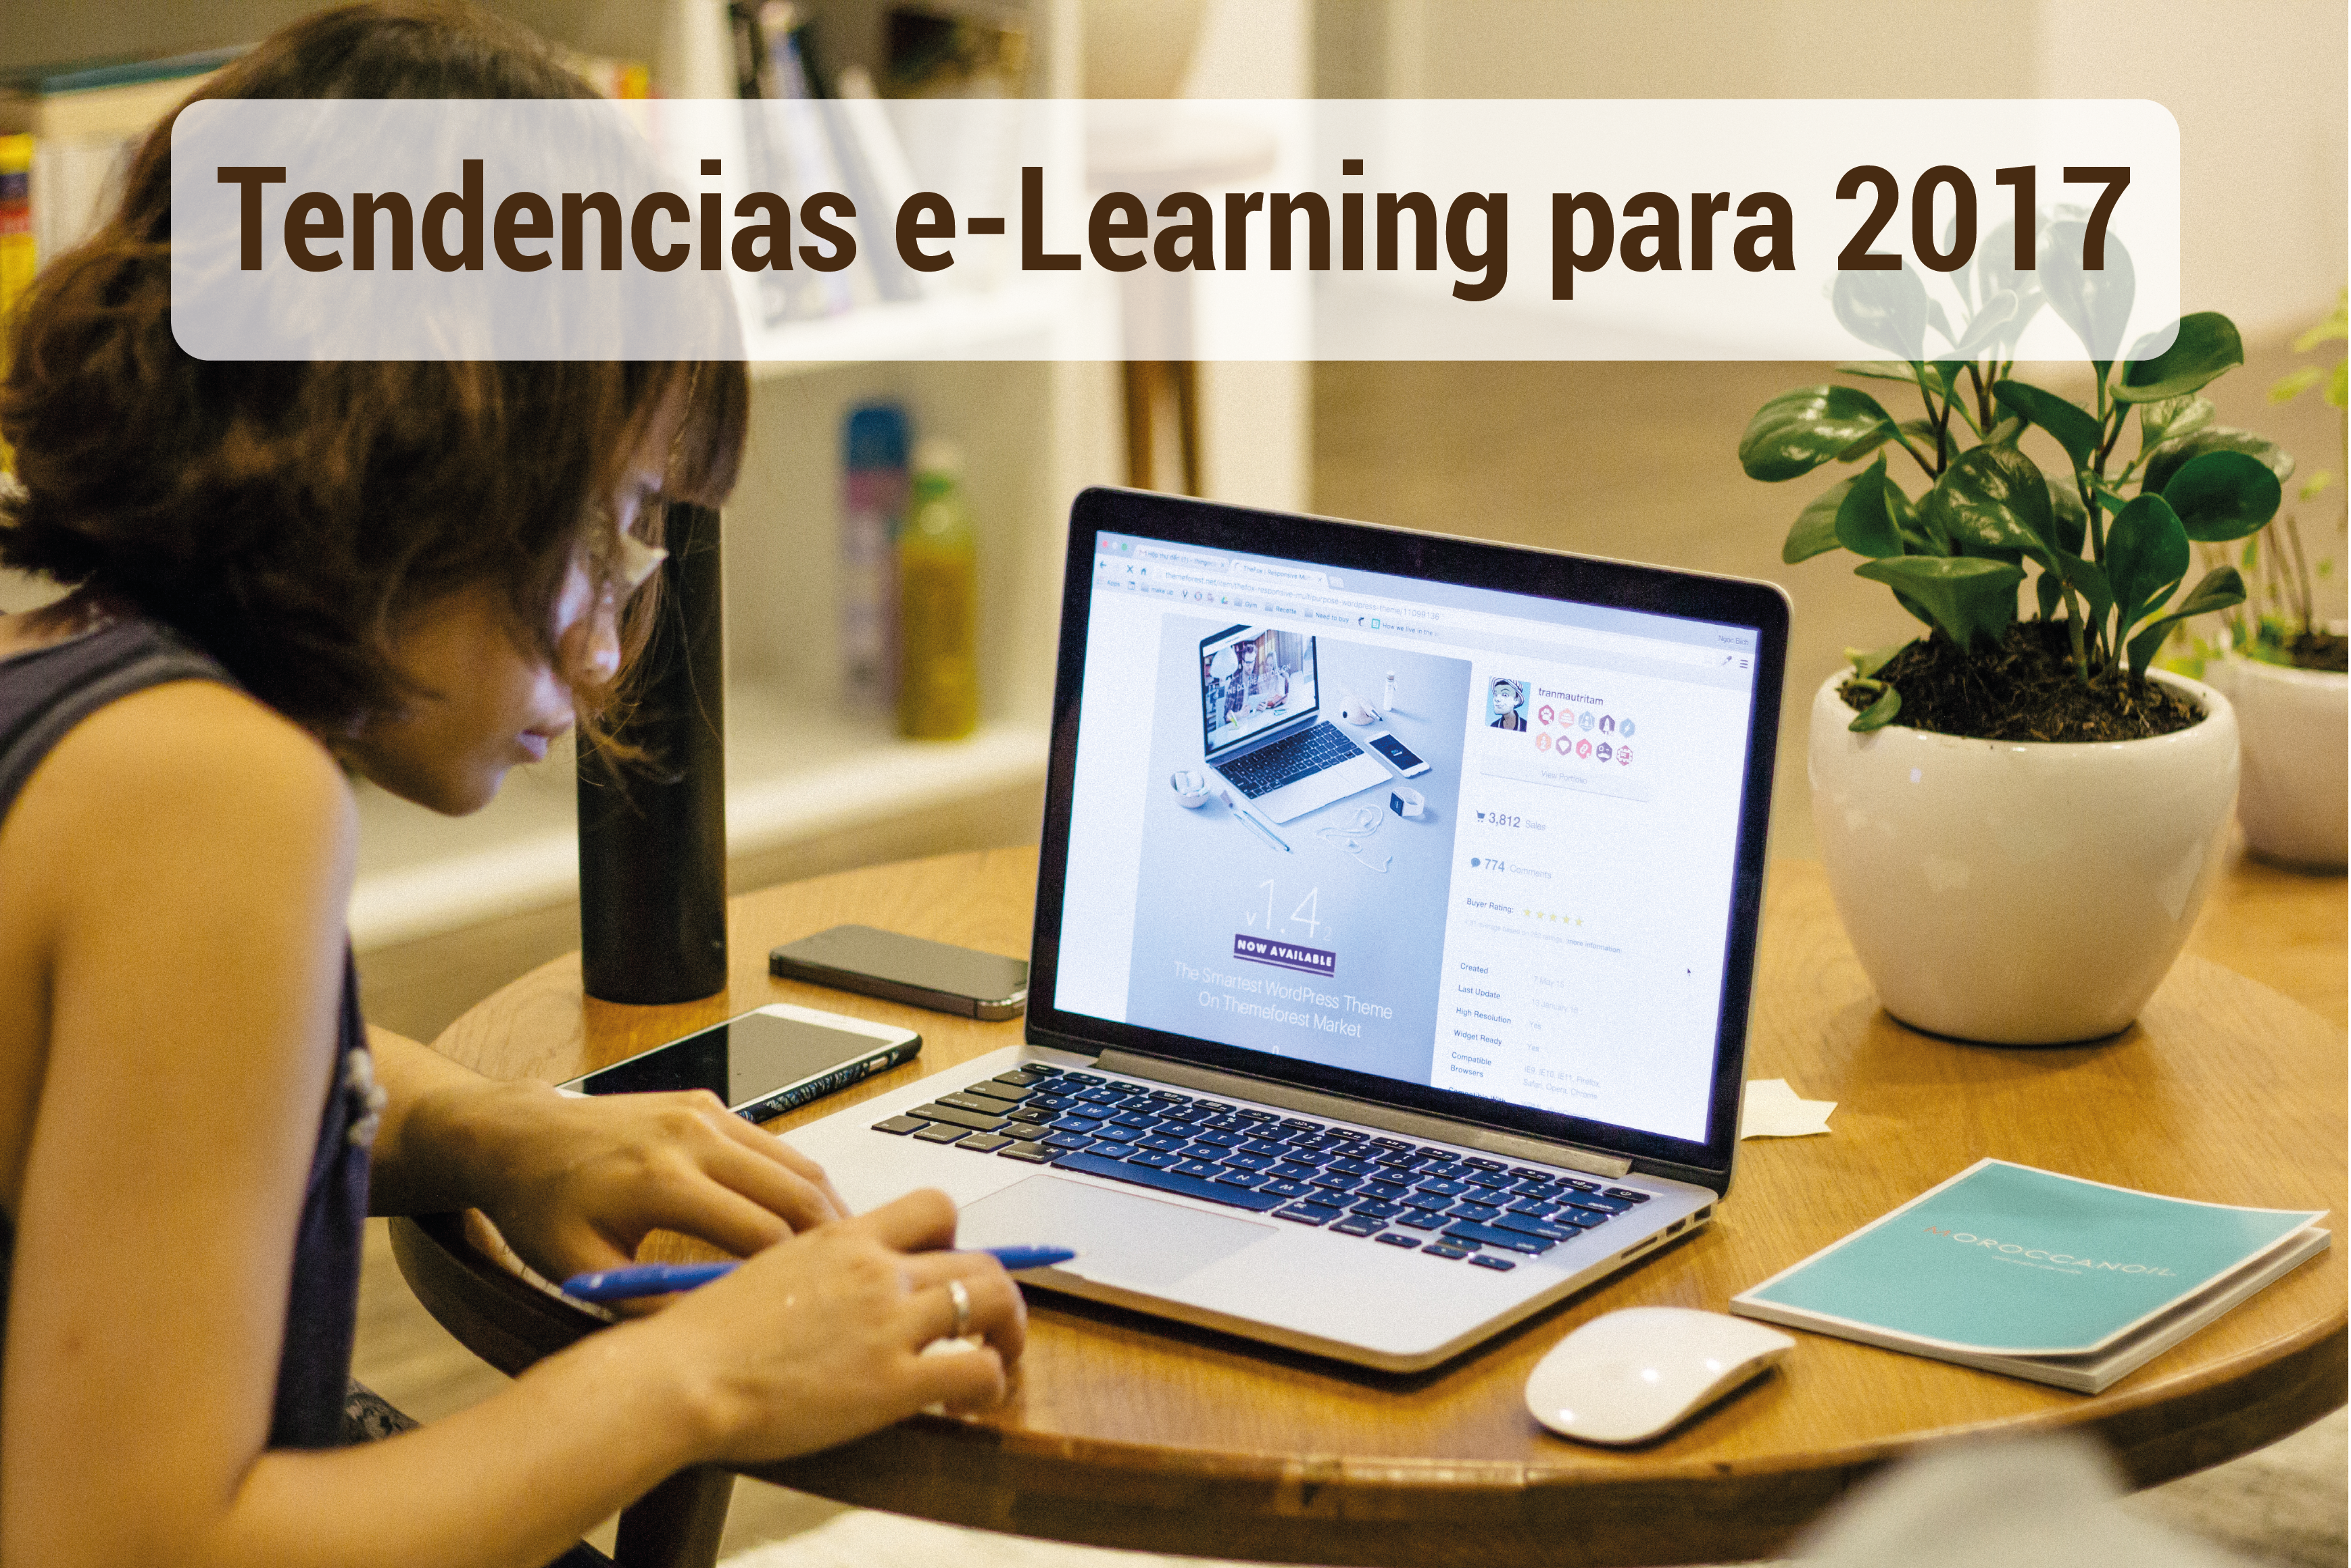 7 Tendencias educativas en e-Learning para 2017